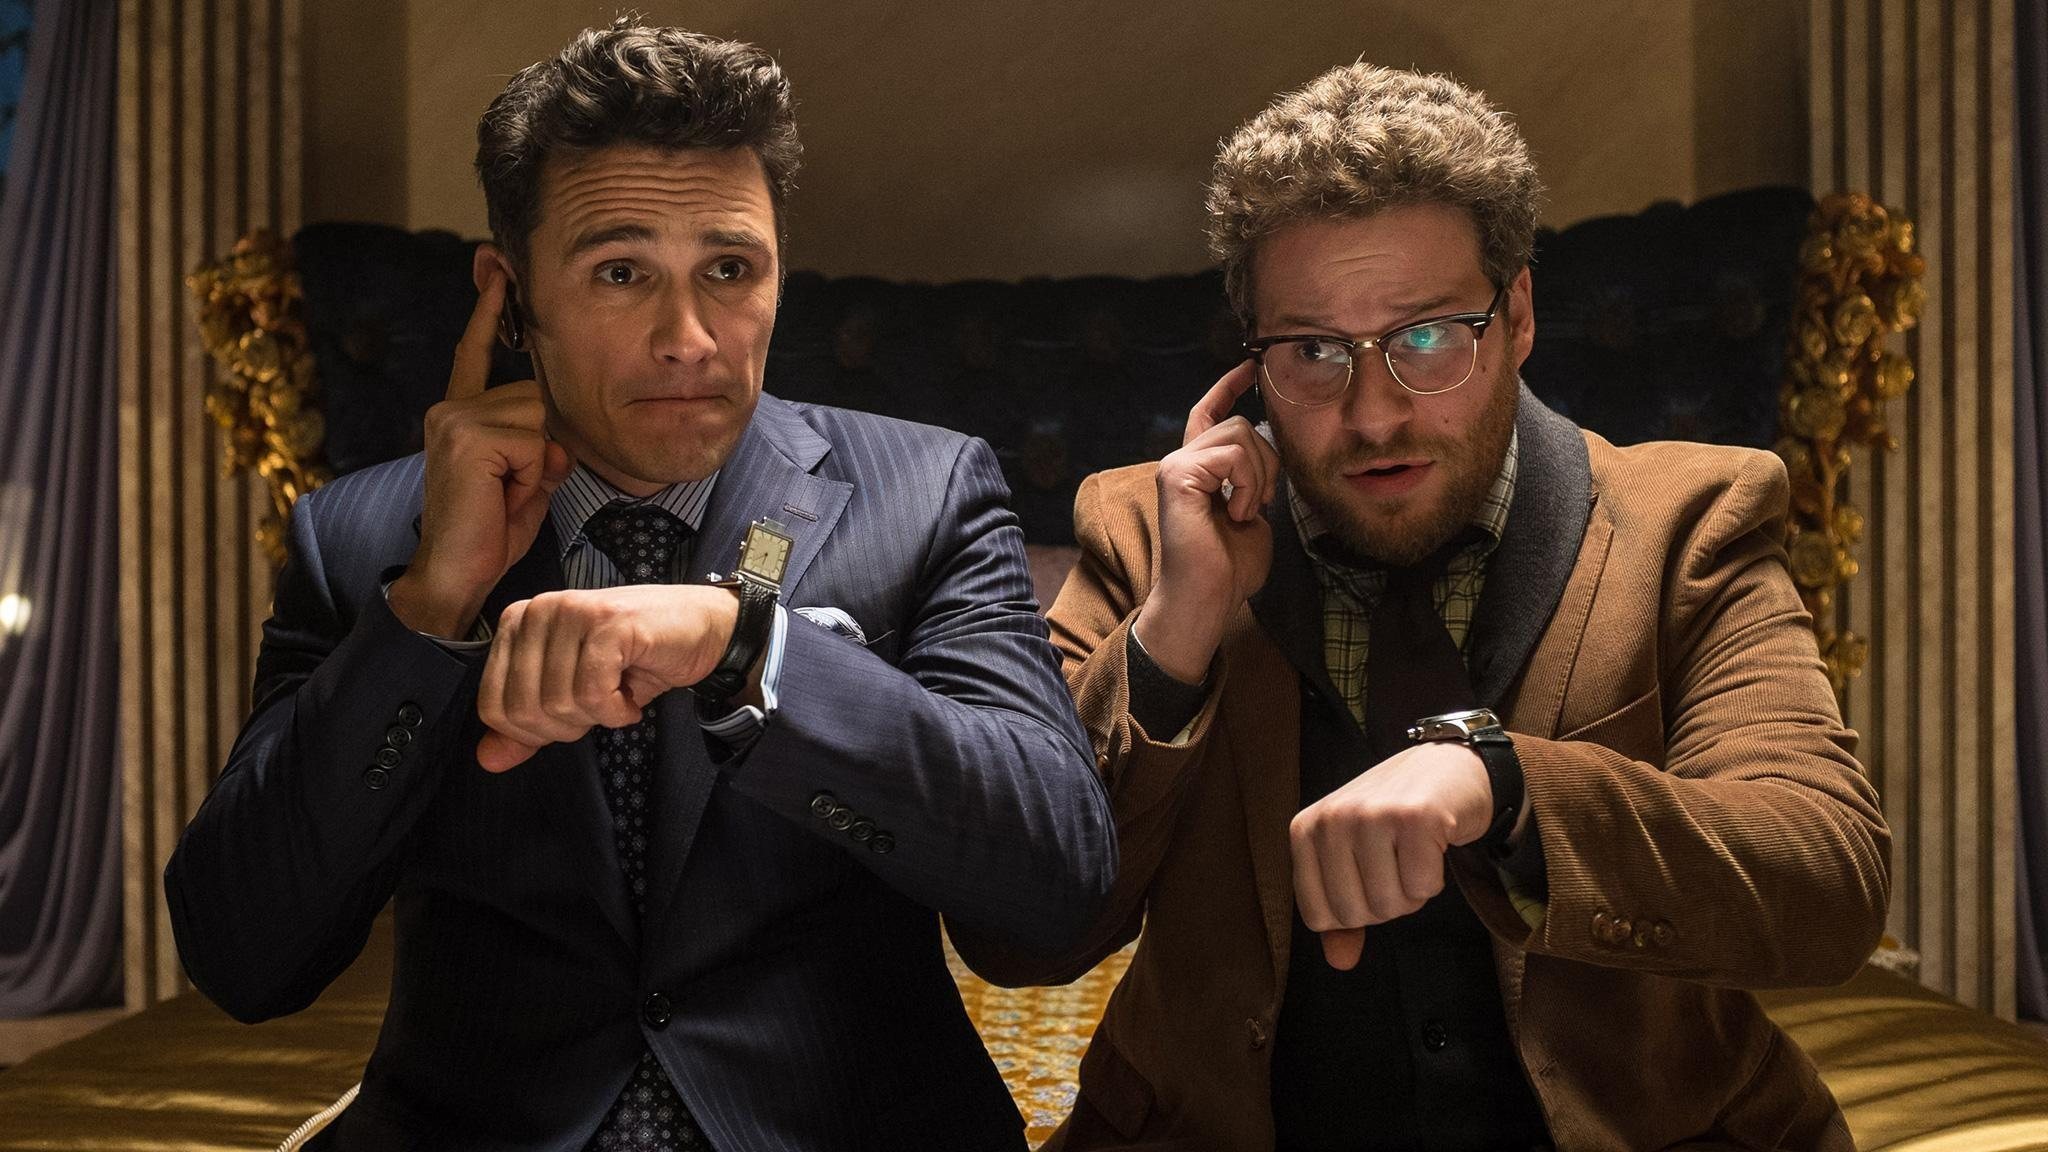 Sony decide estrear The Interview com apoio da Casa Branca